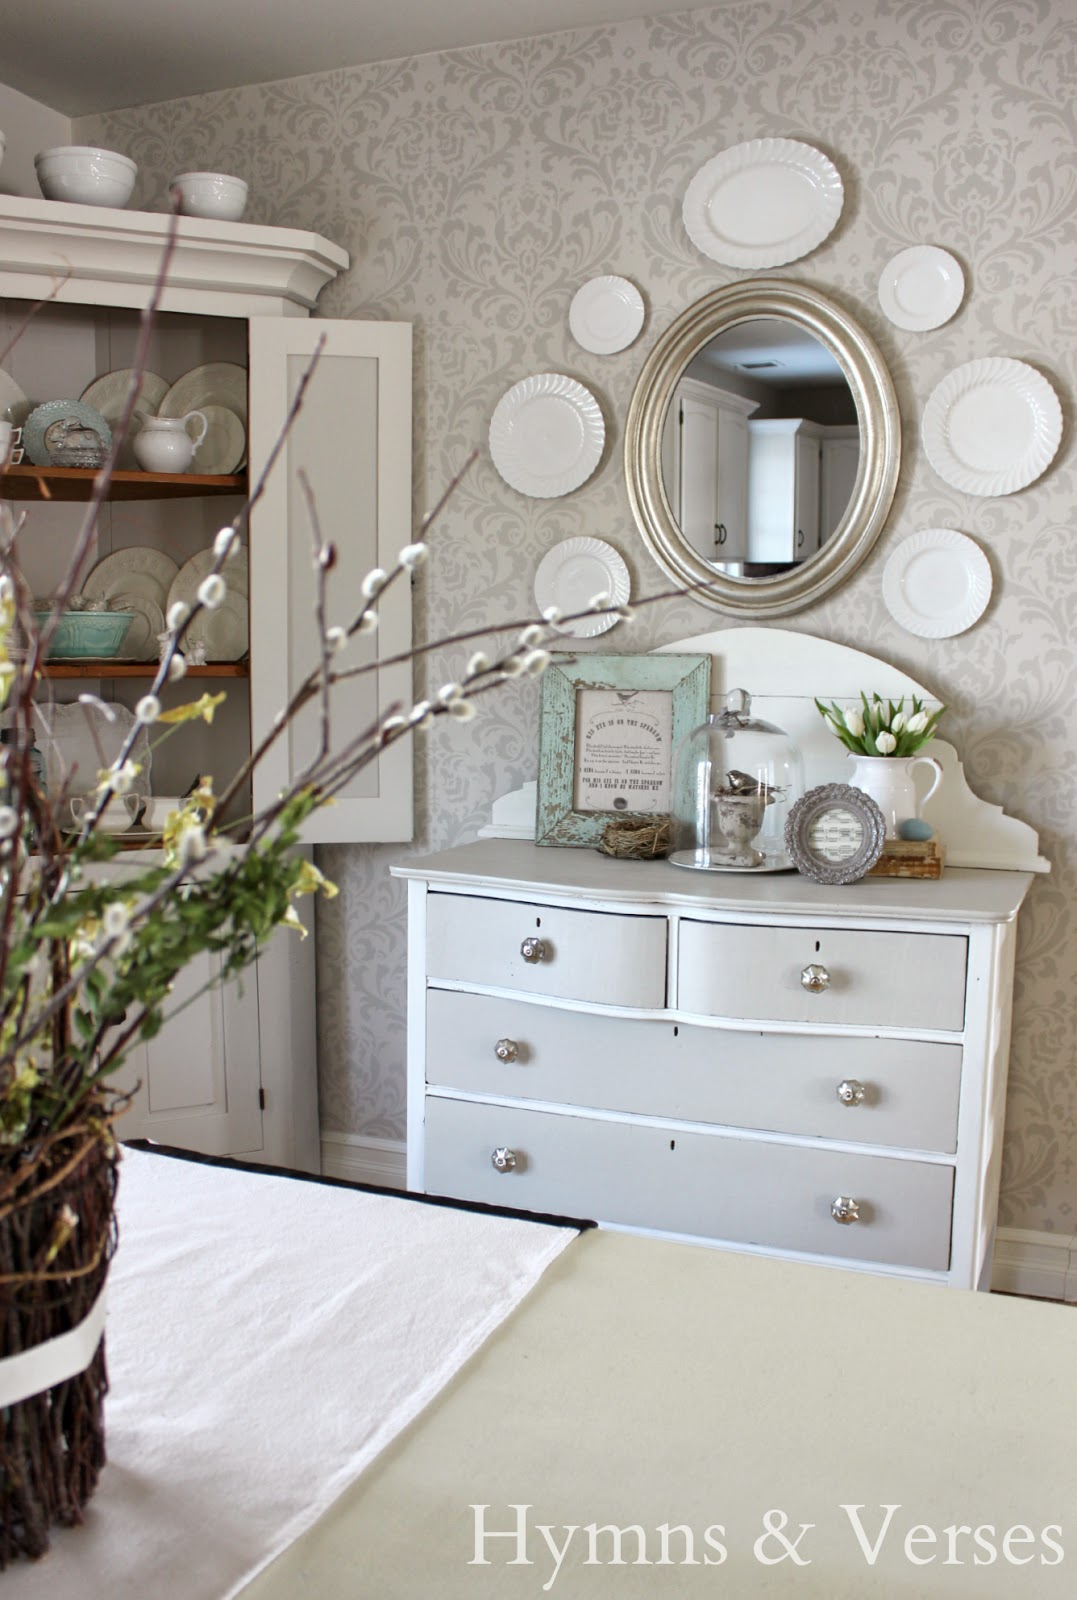 hymns and verses old dresser becomes a dining room buffet